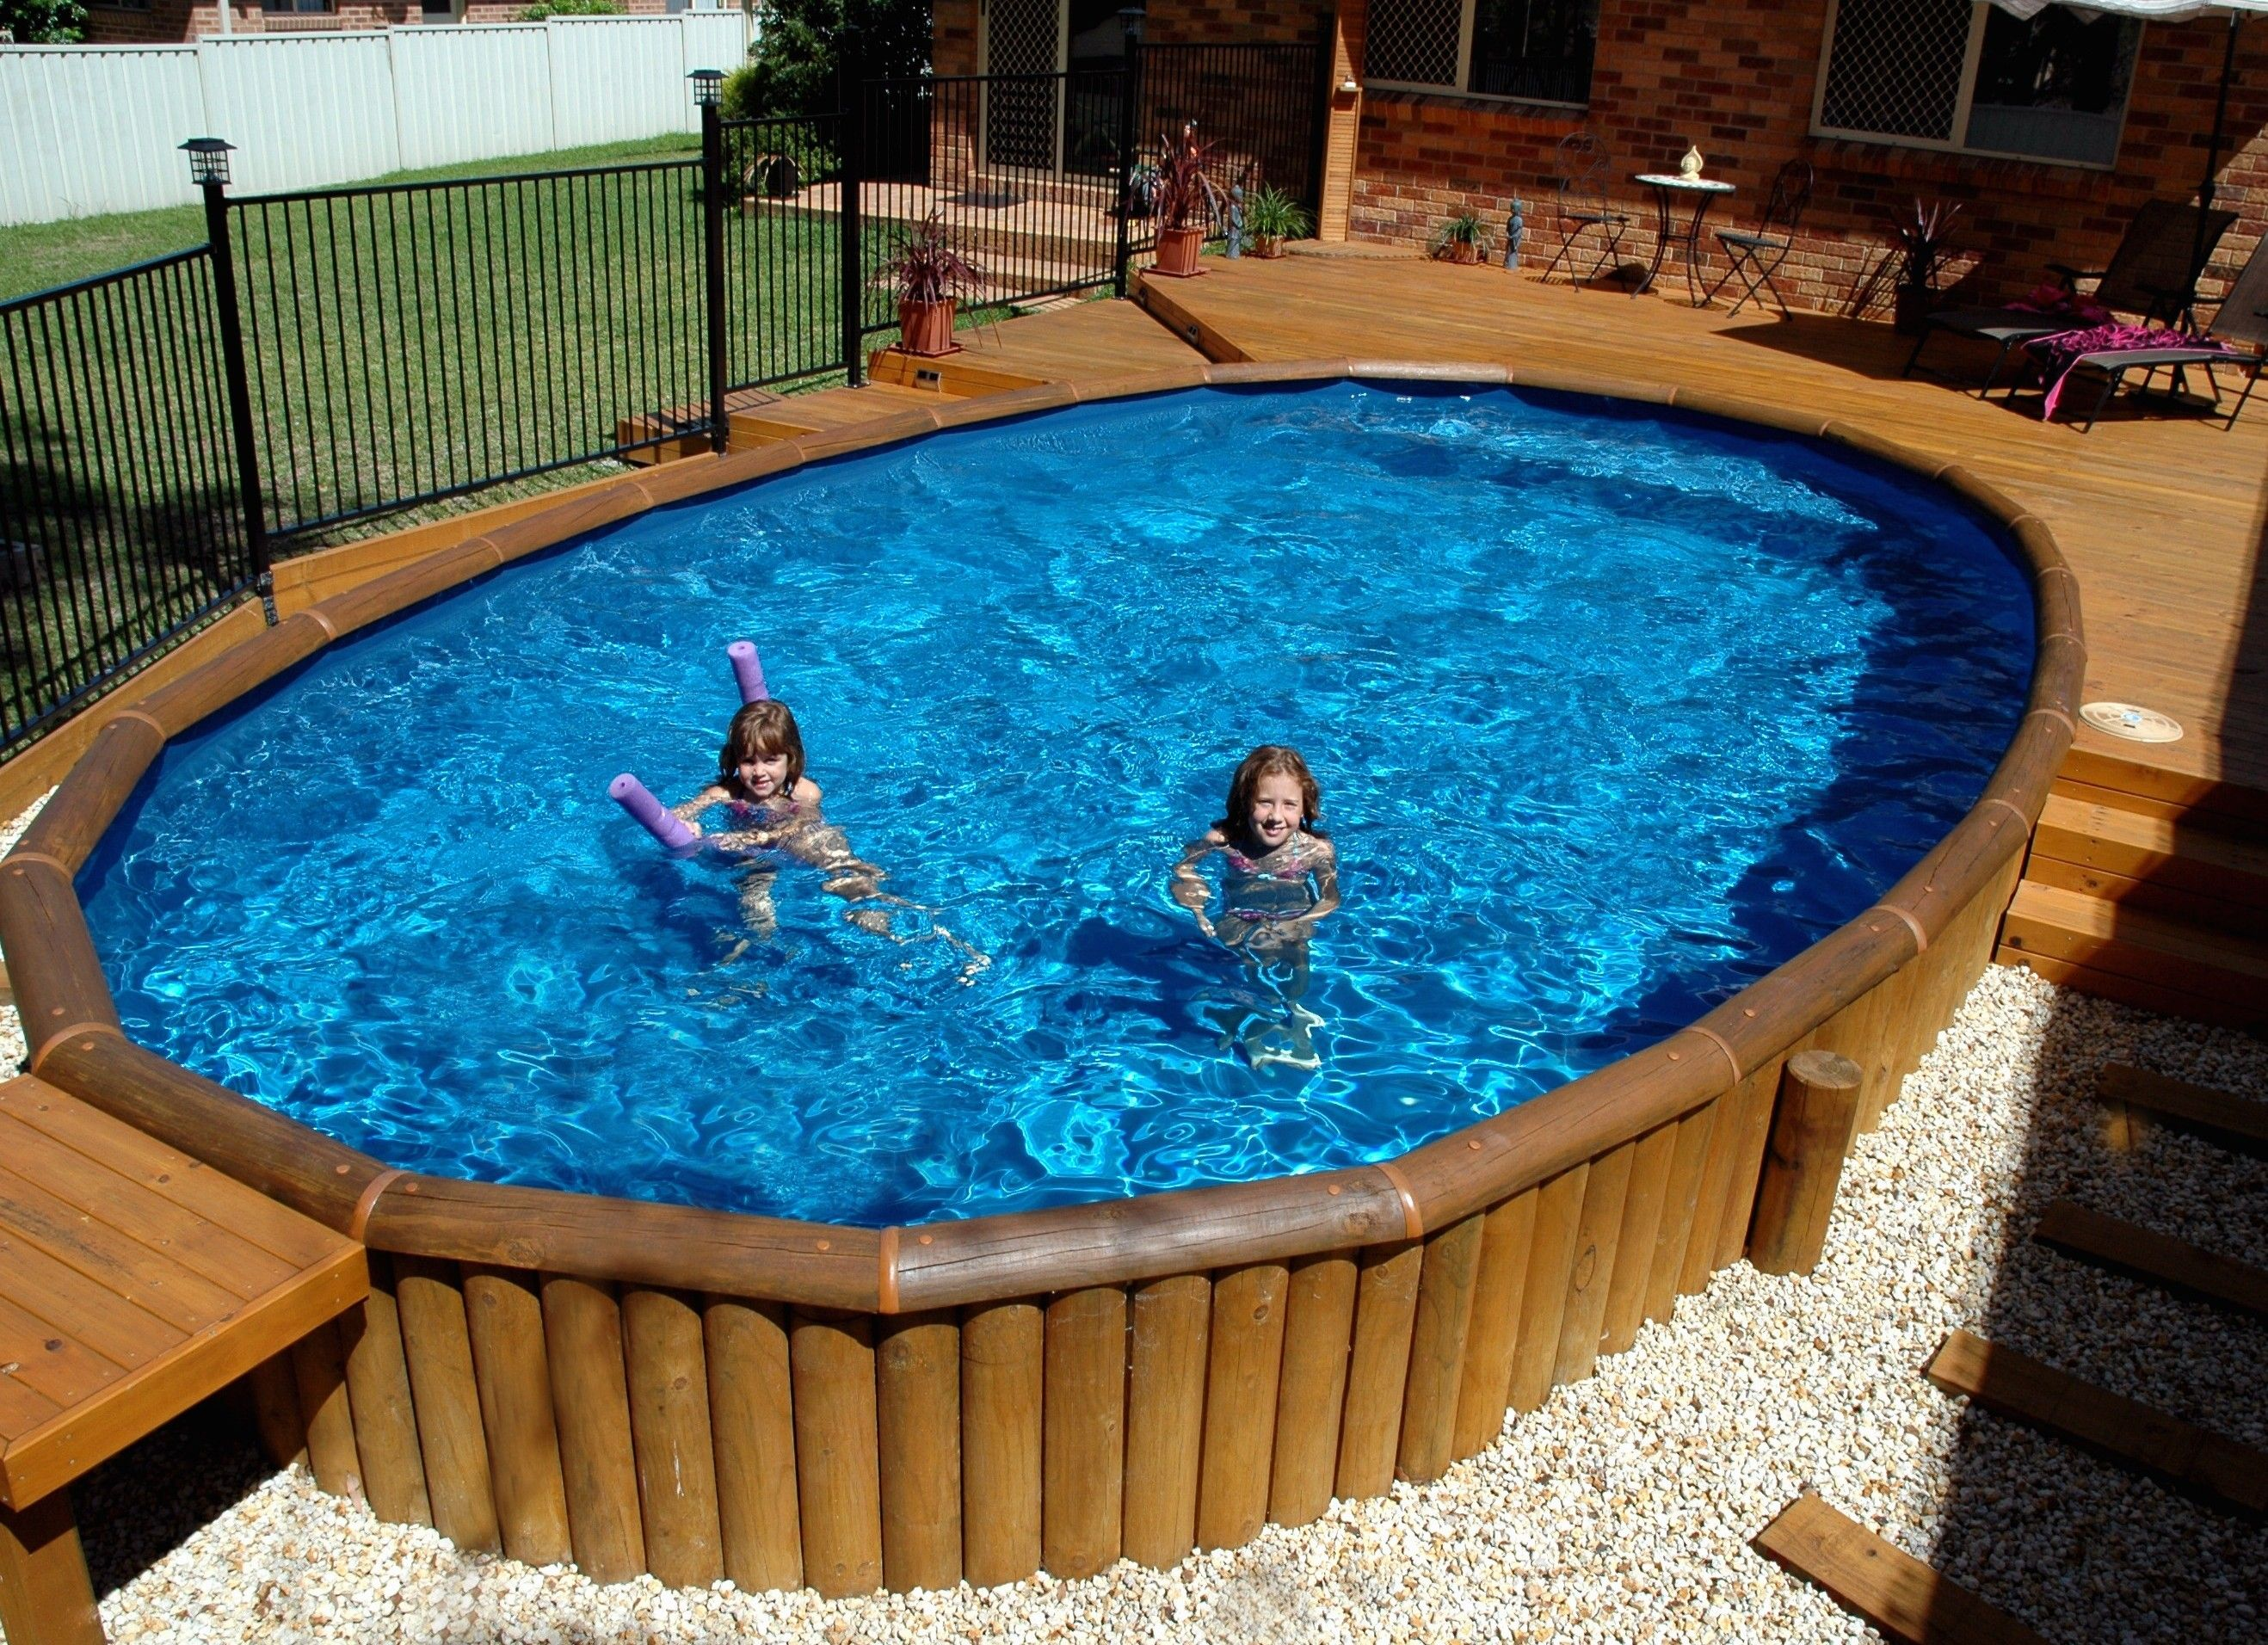 flourishes and additional features for an above ground pool